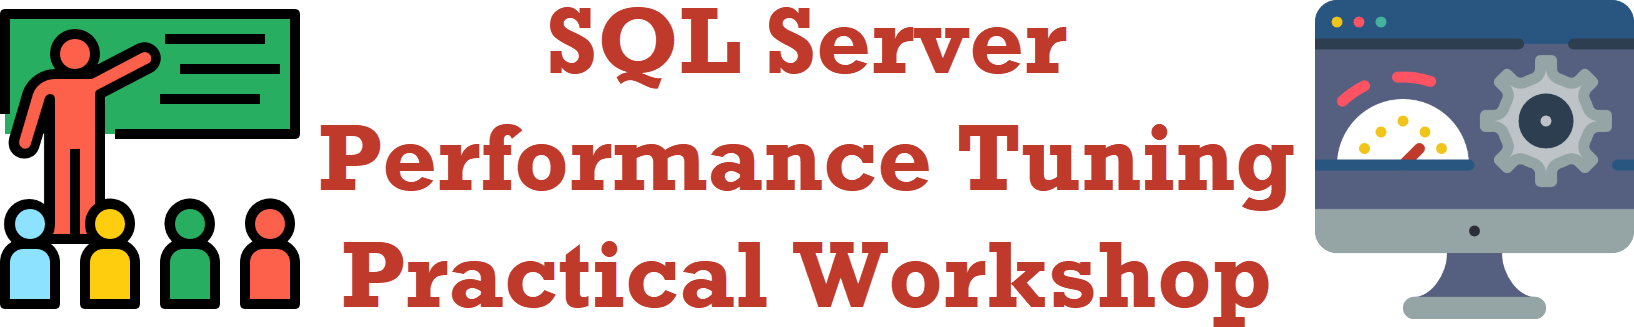 SQL Server Performance Tuning Practical Workshop - Relaunched SQL-Server-Performance-Tuning-Practical-Workshop